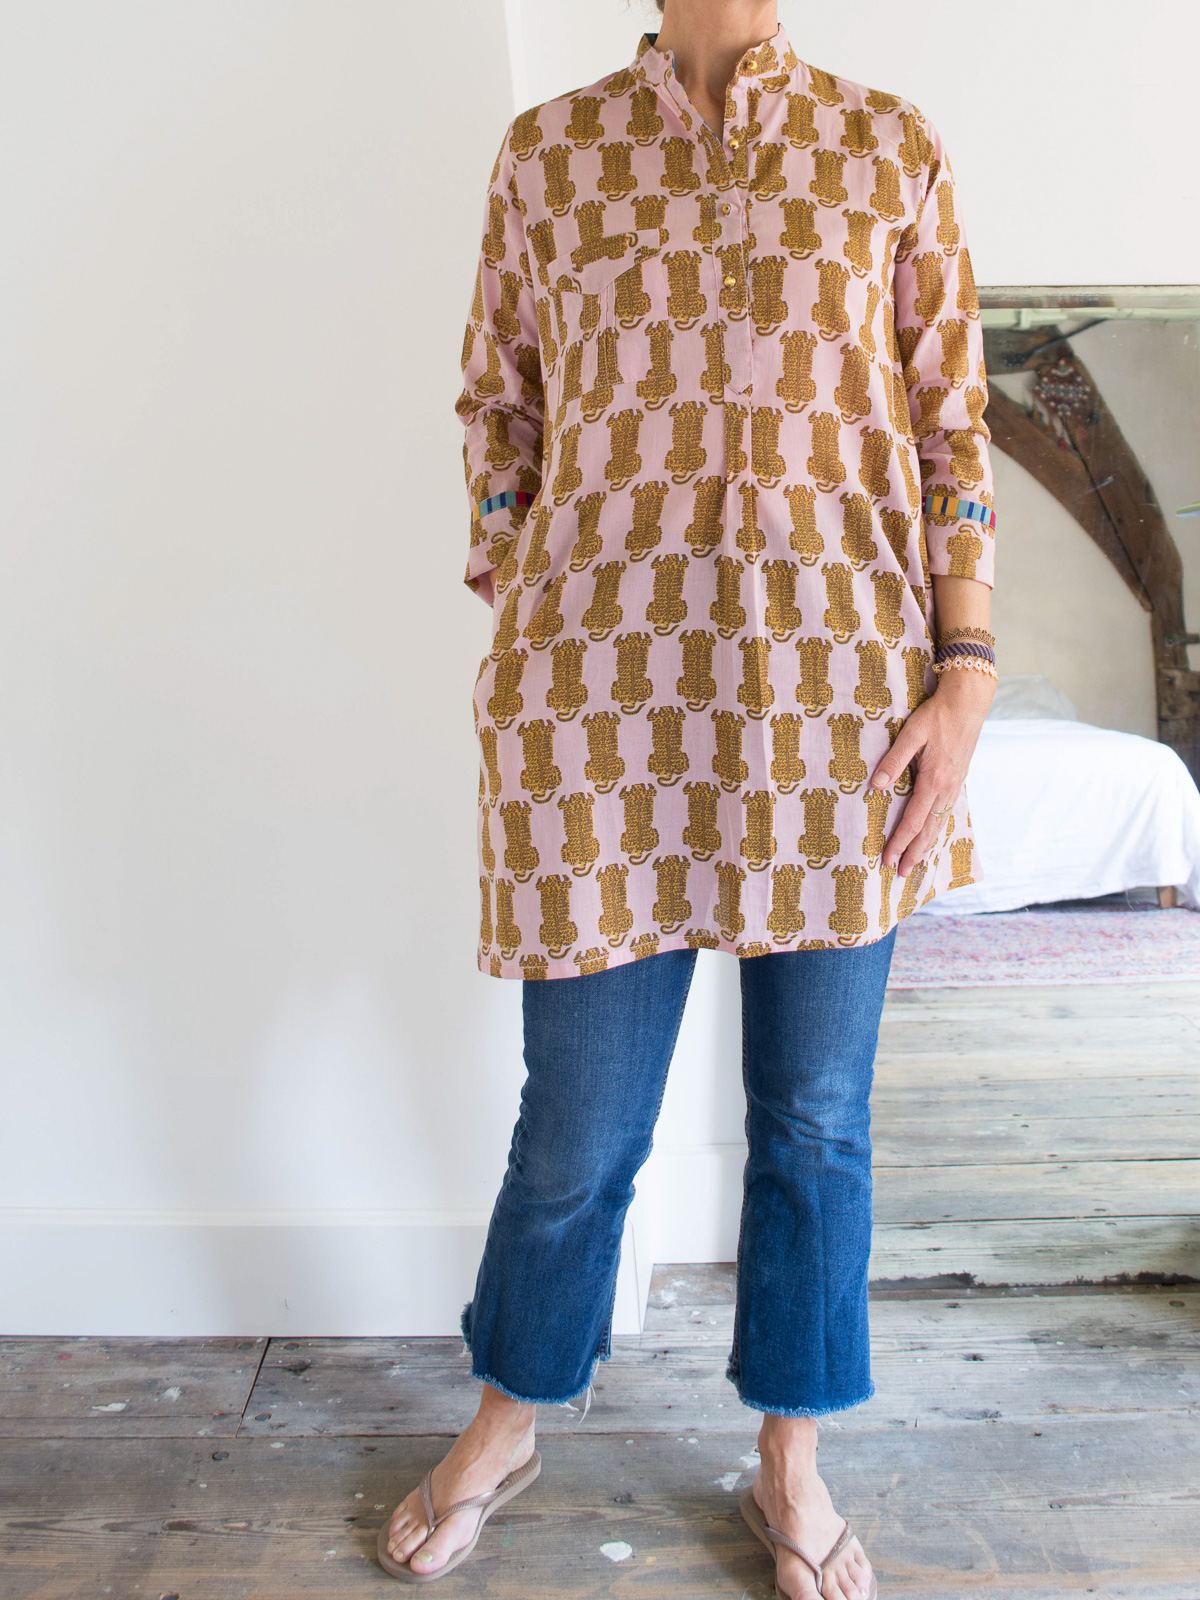 short kurta - pale pink with tigers in ocher